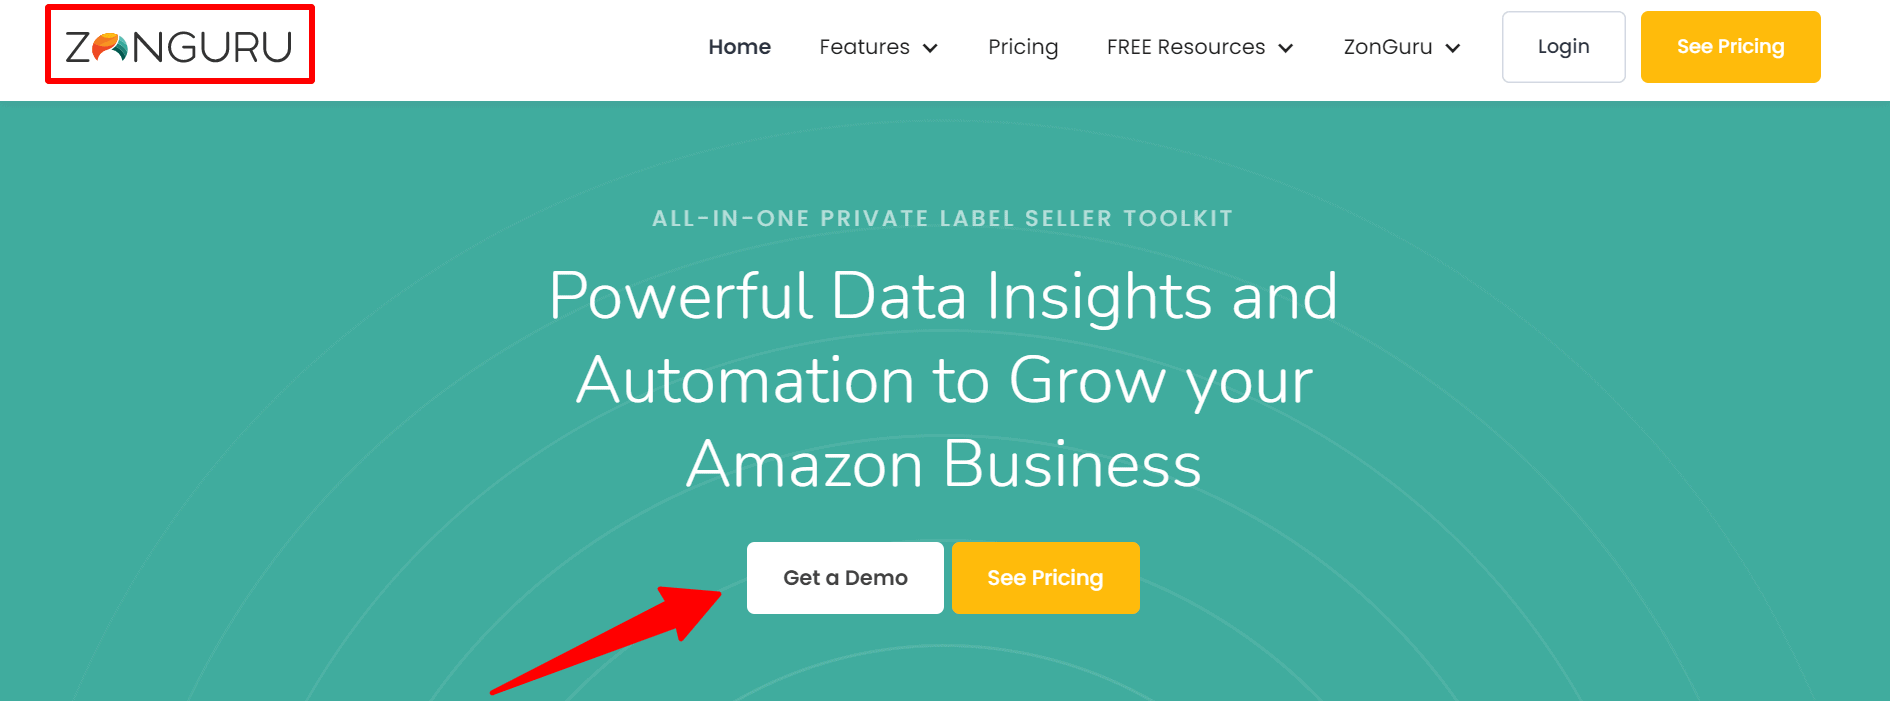 ZonGuru-Data-Centric-Tools-To-Scale-Your-FBA-Business-The-Right-Way